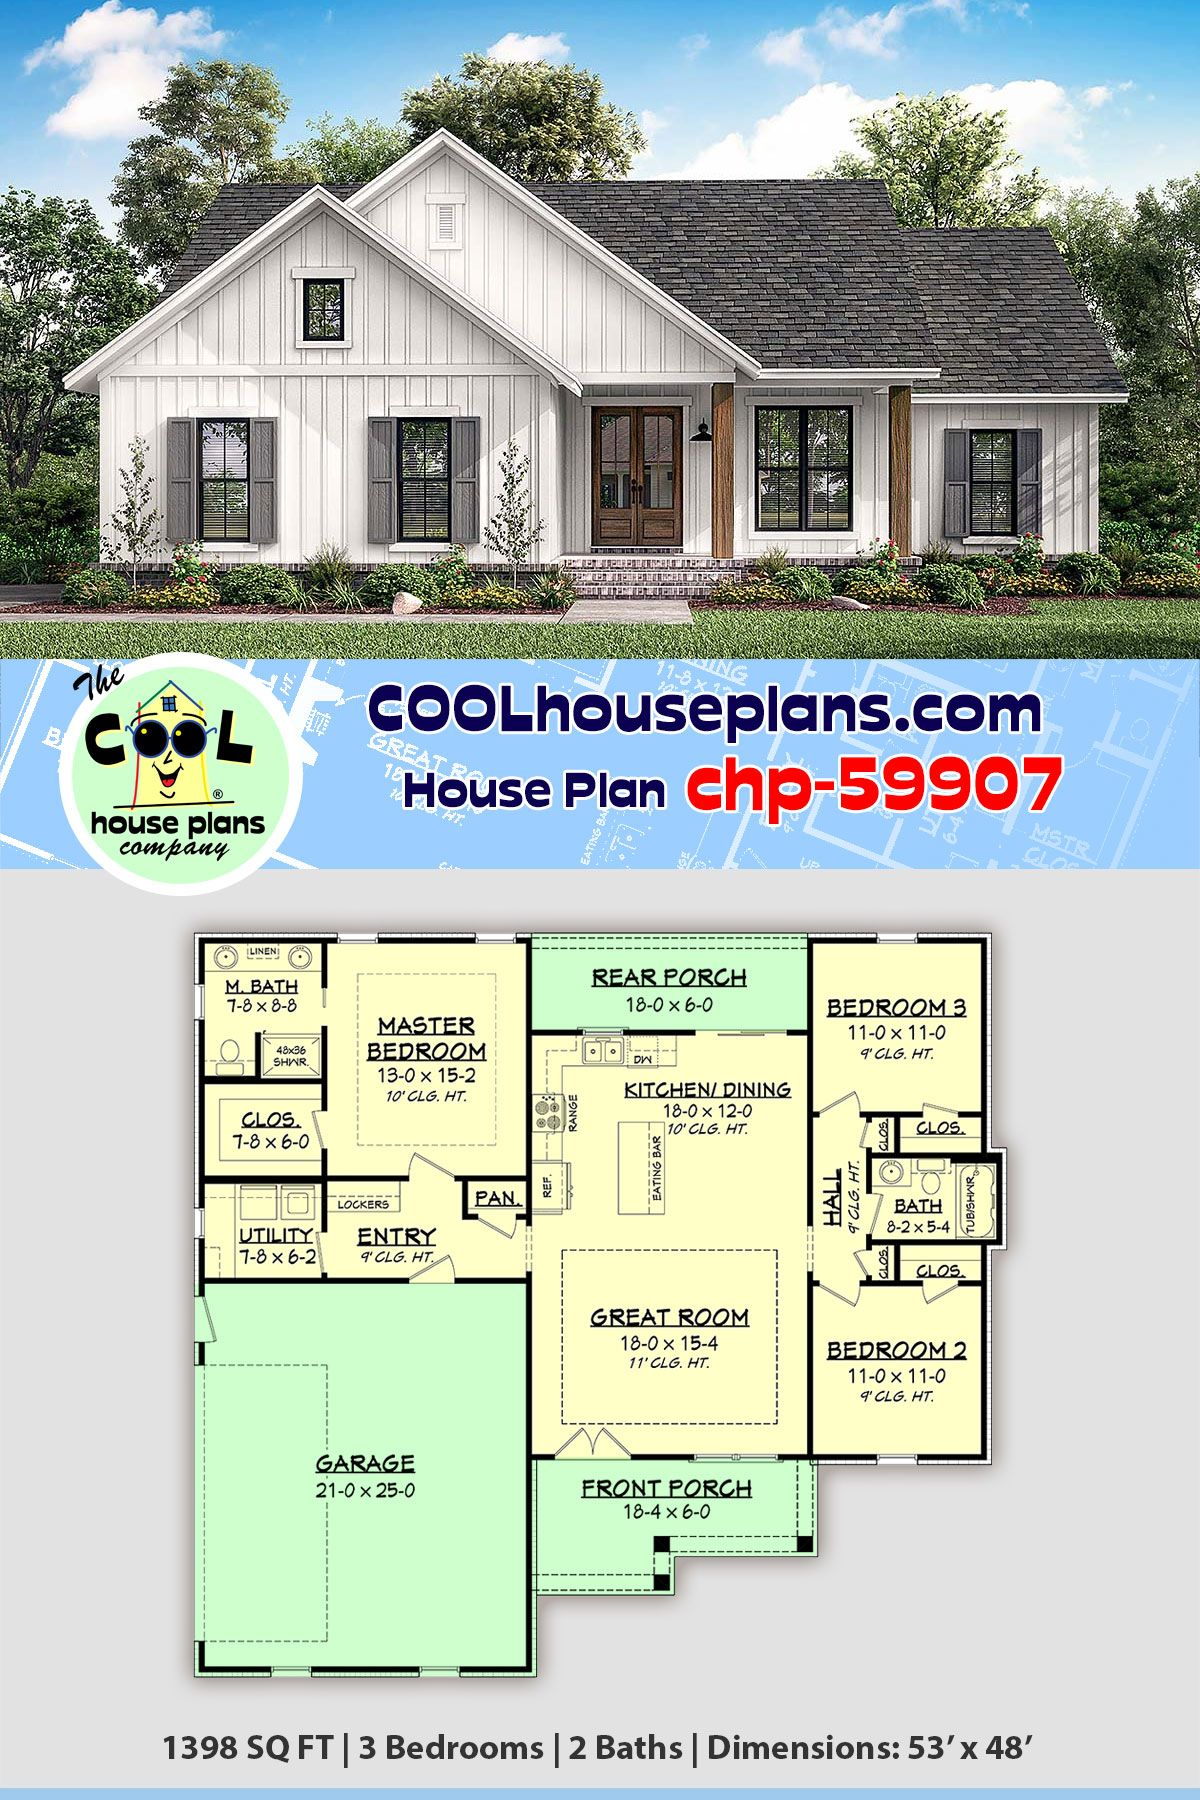 Traditional Style House Plan 51997 With 3 Bed 2 Bath 2 Car Garage House Plans Farmhouse Small Country Homes Country House Plans